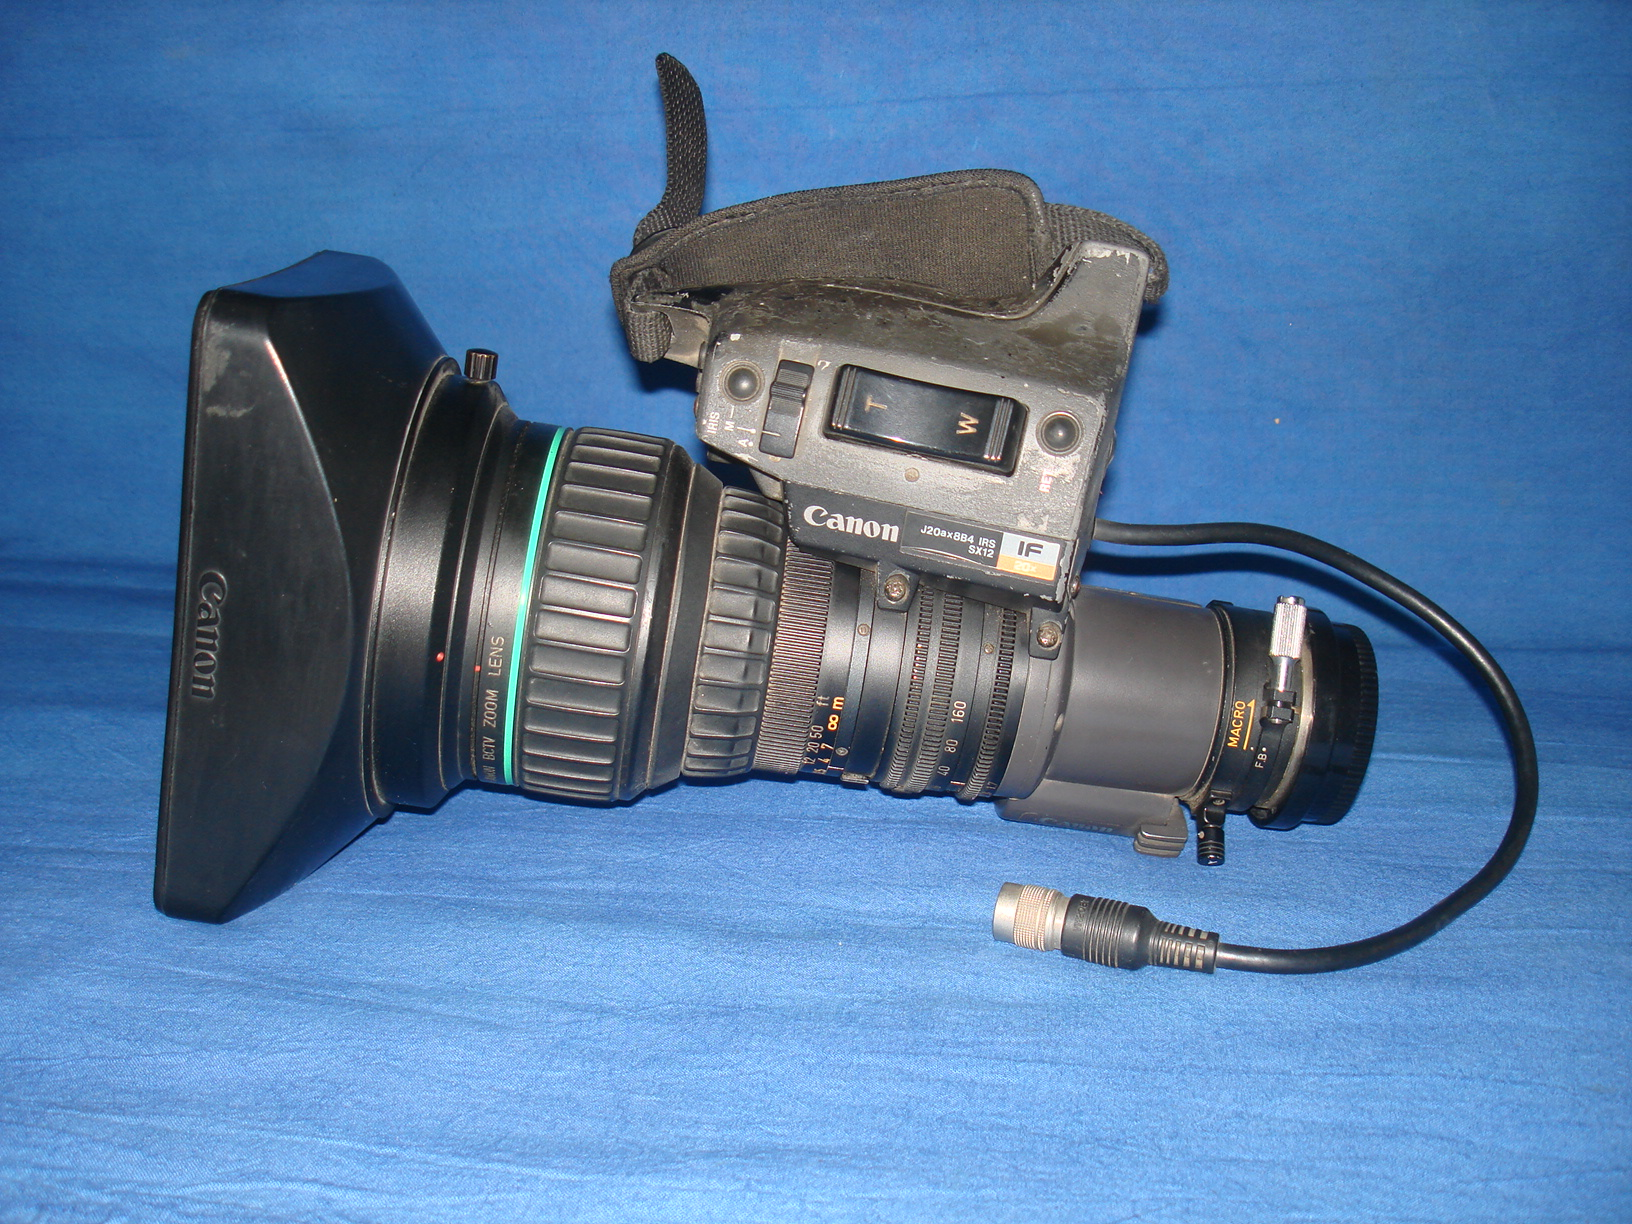 Canon Canon J20a X 8B4 WRS widescreen switchable version with doubler - Image #1